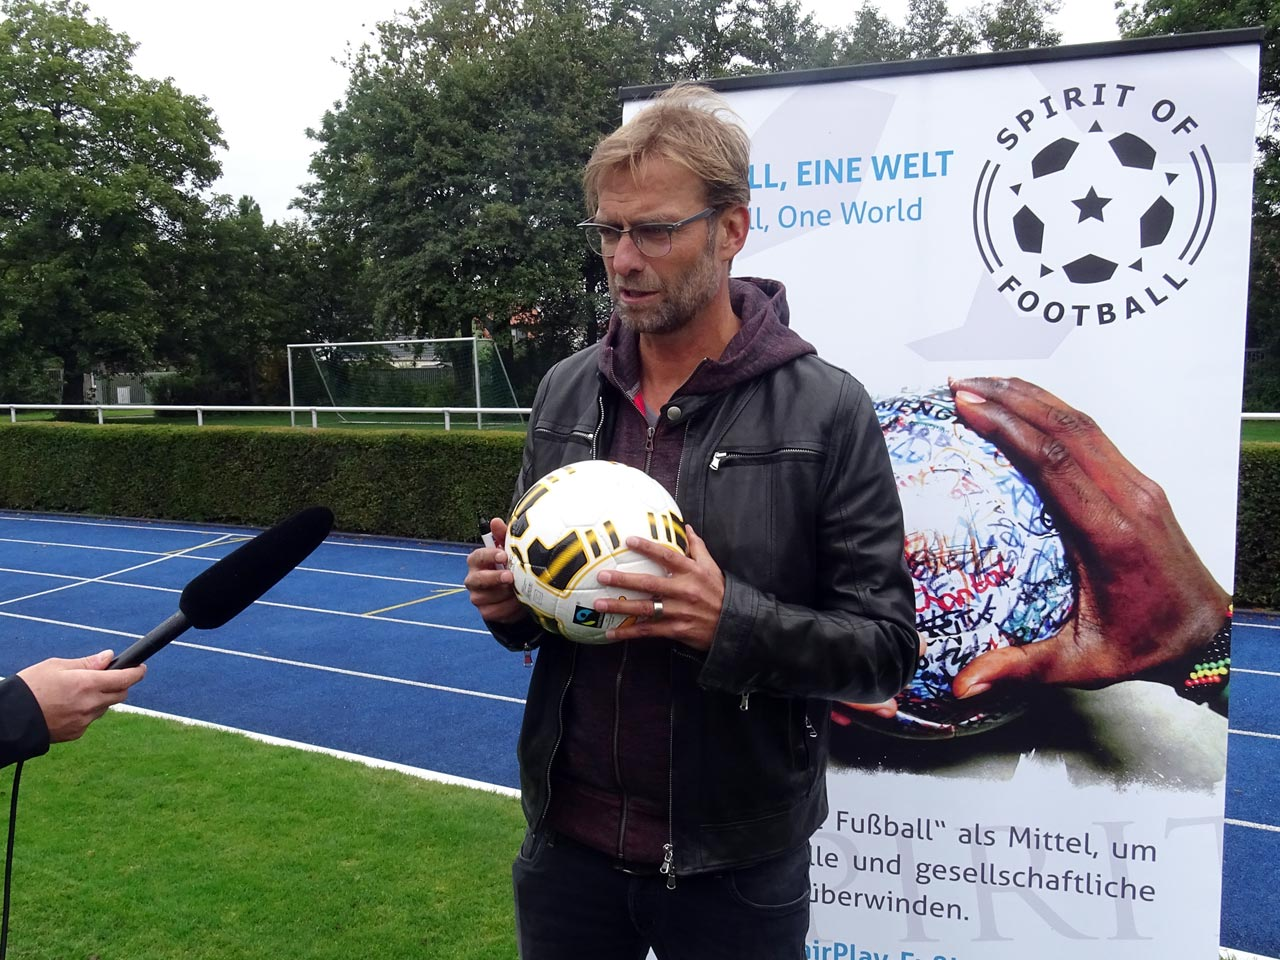 Jürgen Klopp, our biggest supporter